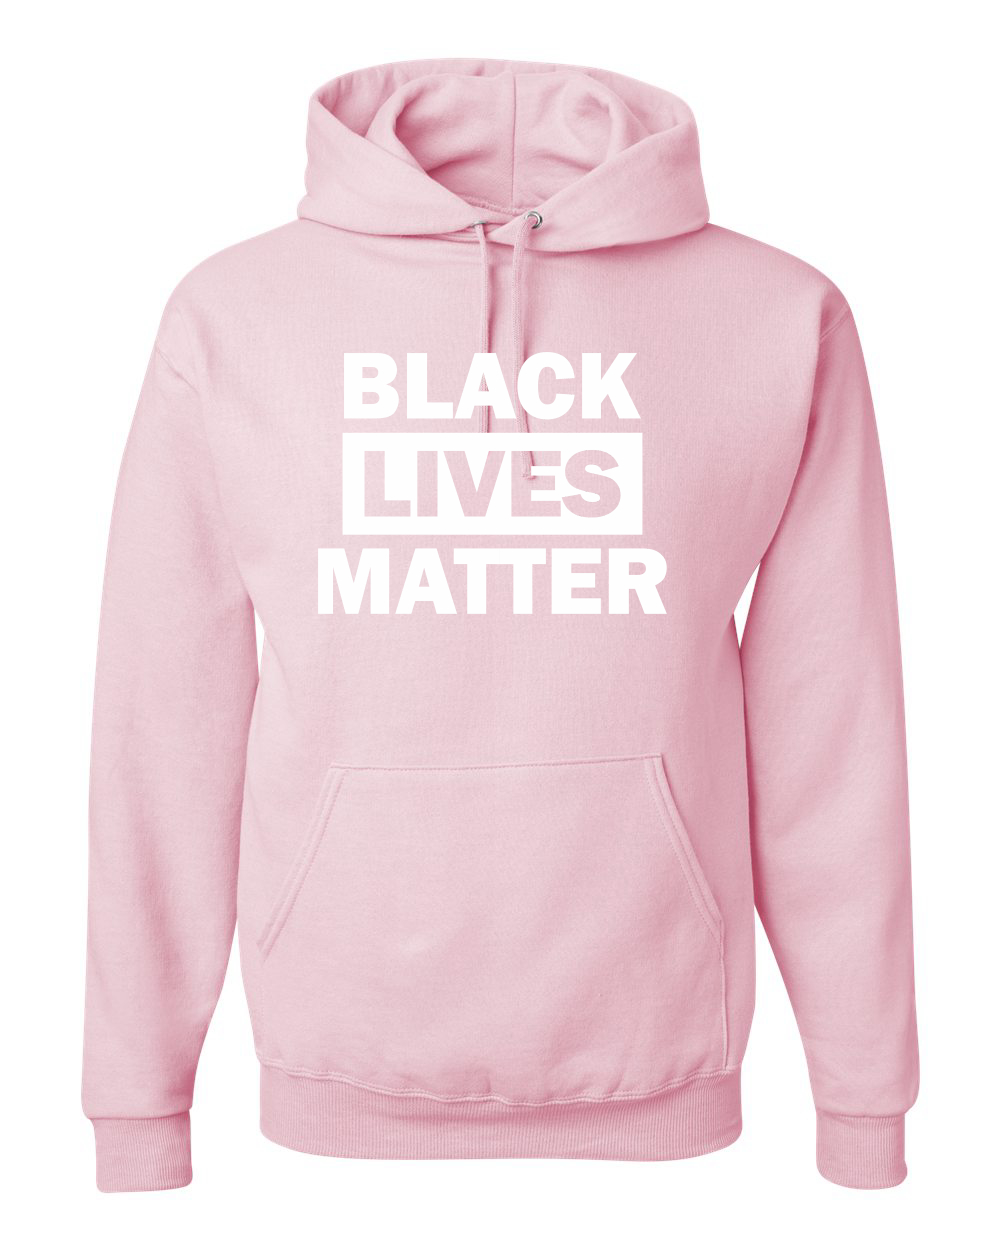 YOUTH large sweater youth pink inspired pink inspired pink pink vs baby baby pink vs